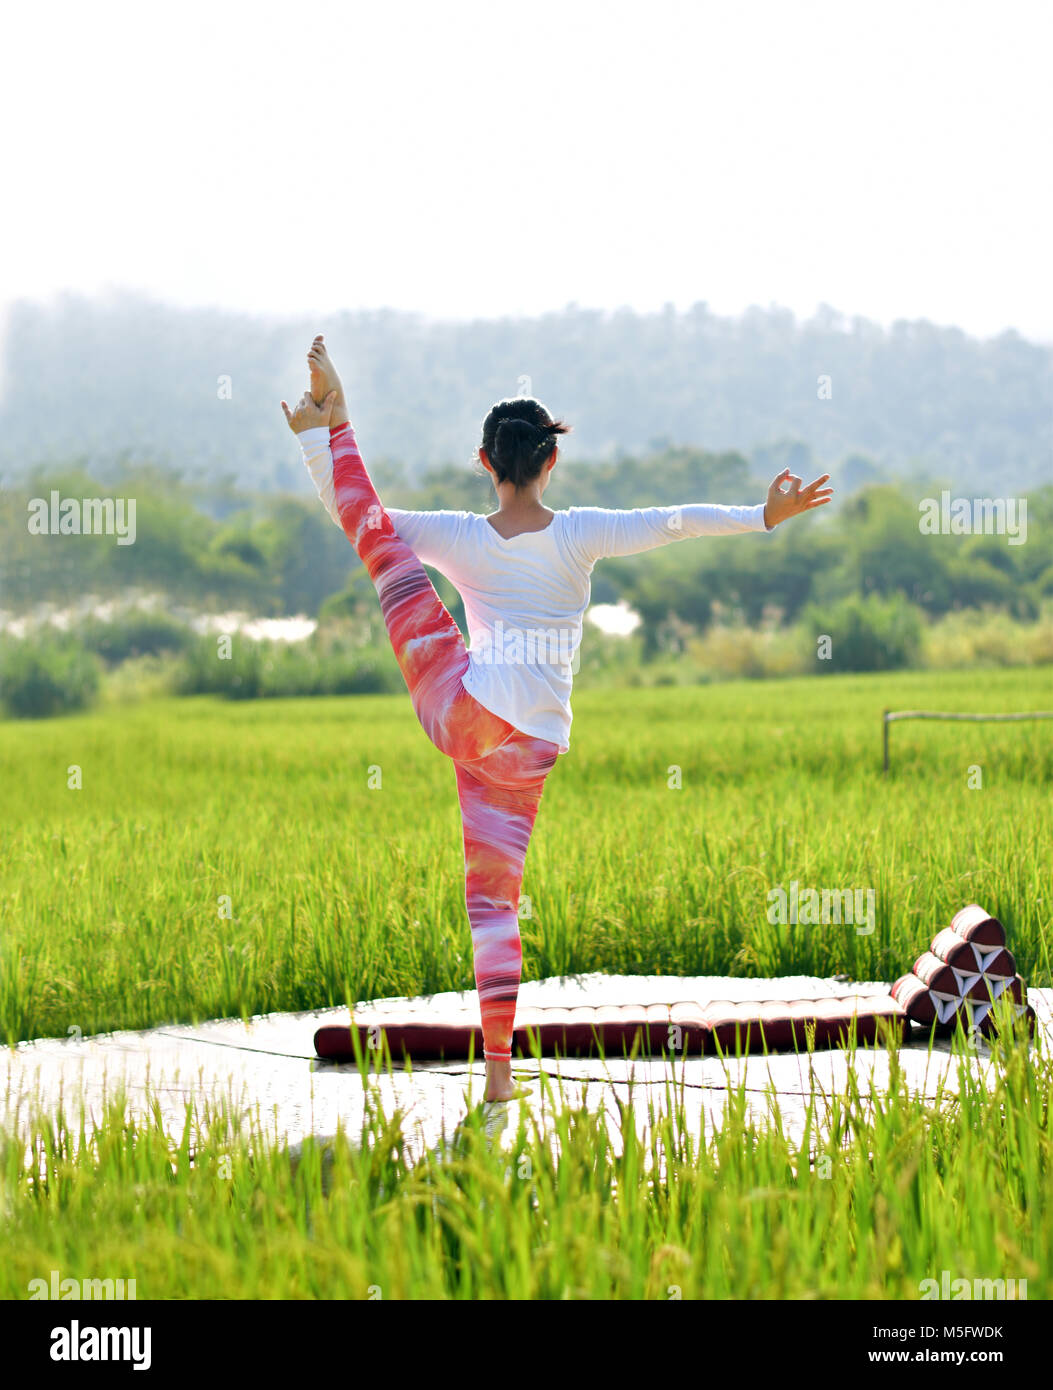 A woman do variation of utthita hasta padangusthasana yoga pose on a wood terrace in a green rice field, outdoor - Stock Image